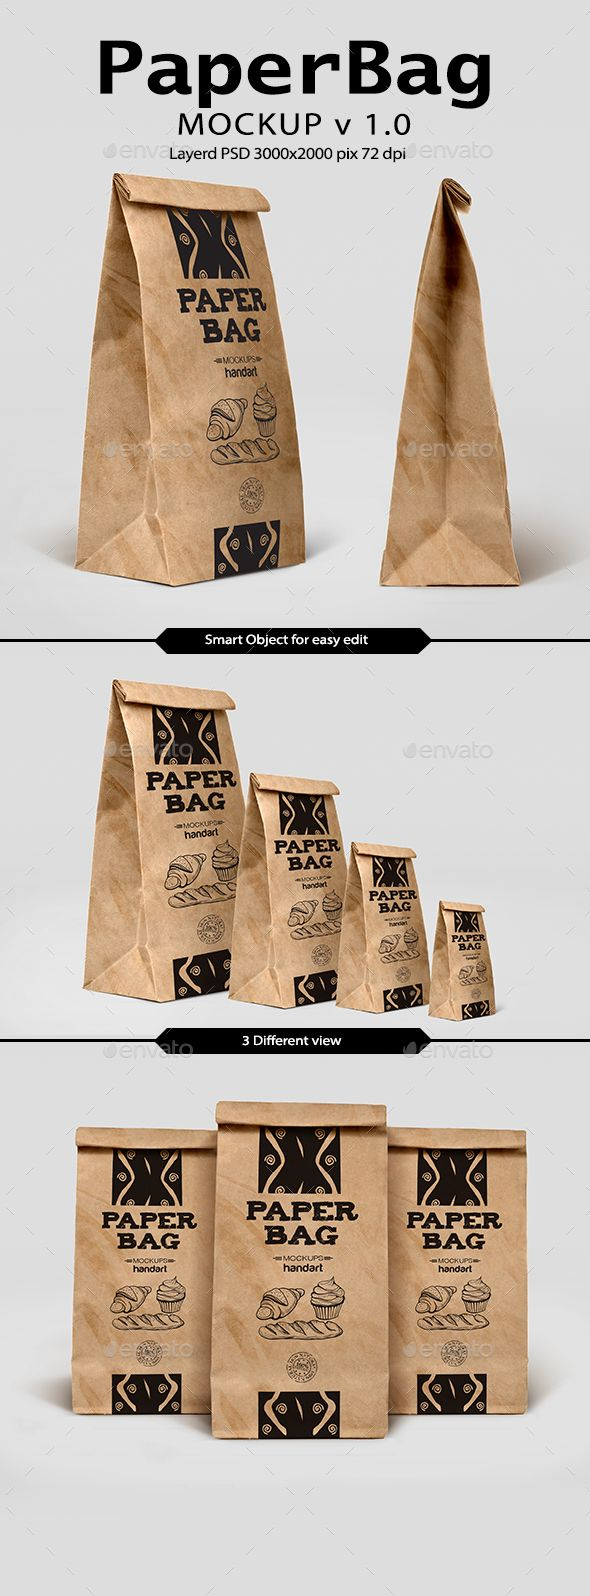 Download Paper Bag Mockup 1 0 By Handart Present Your Pack Design In Realistic View You Can Use My Mockup For Your Bran Tea Packaging Design Bag Mockup Paper Packaging